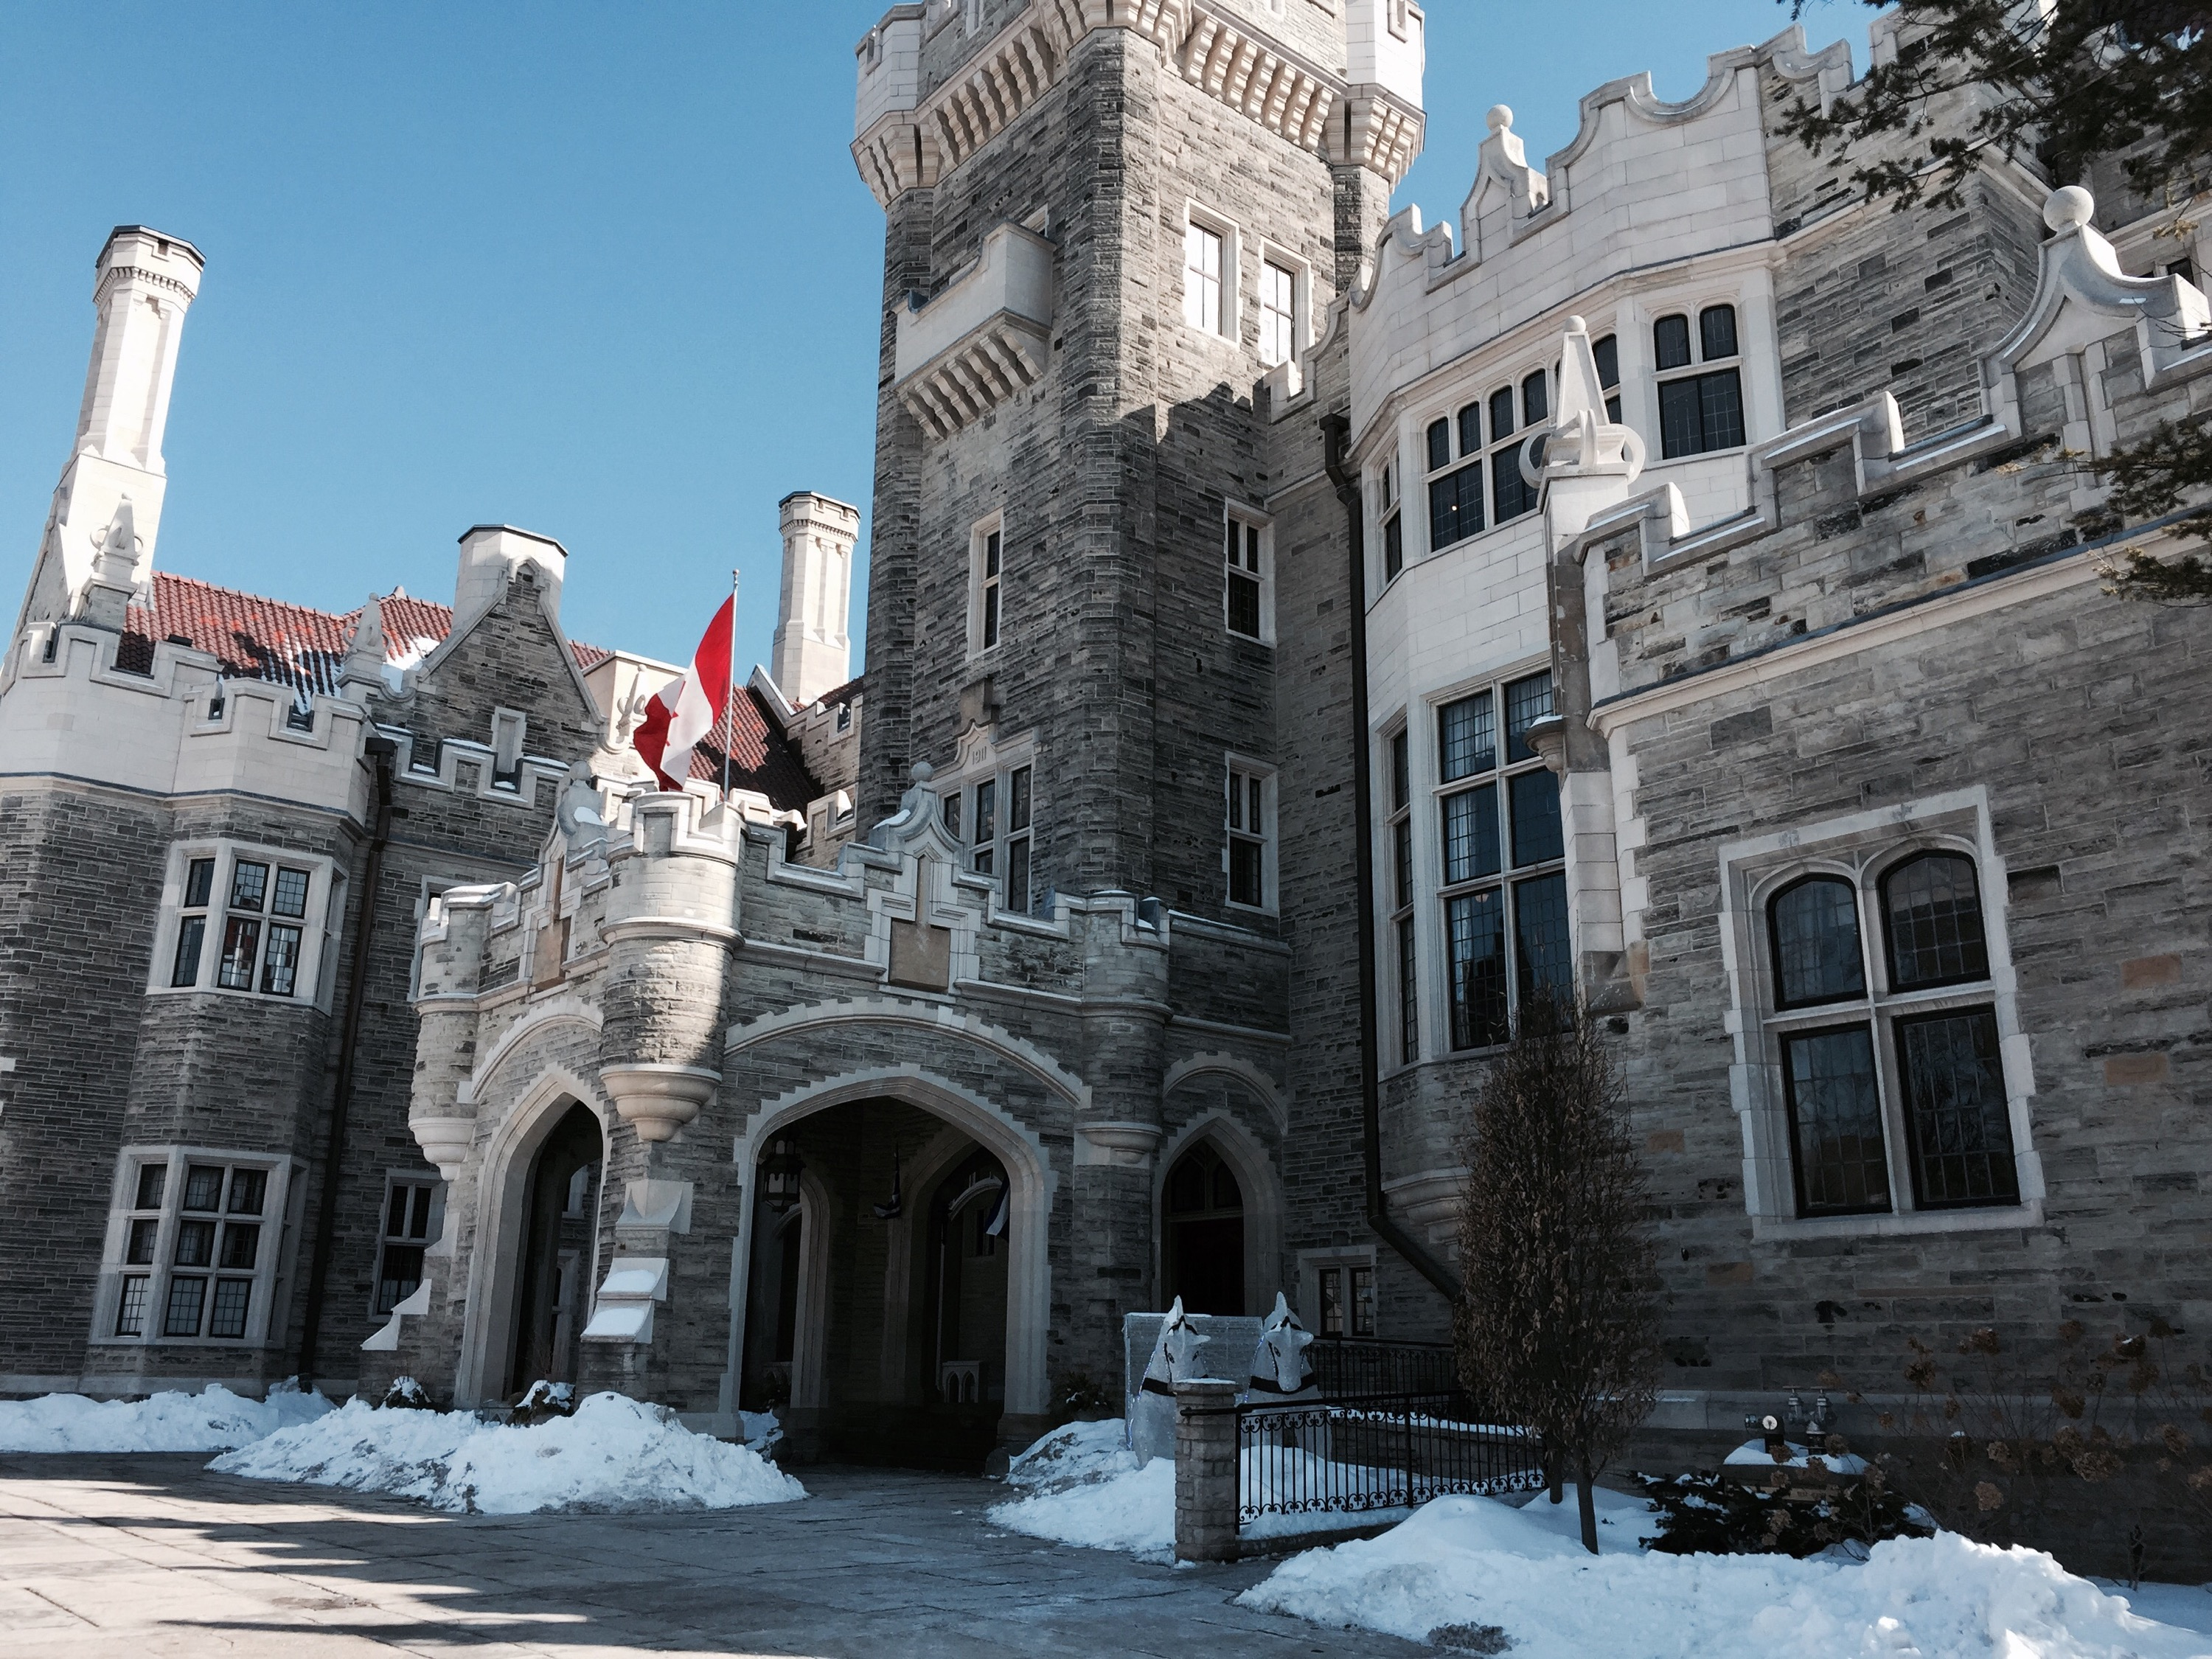 Entrance of Casa Loma